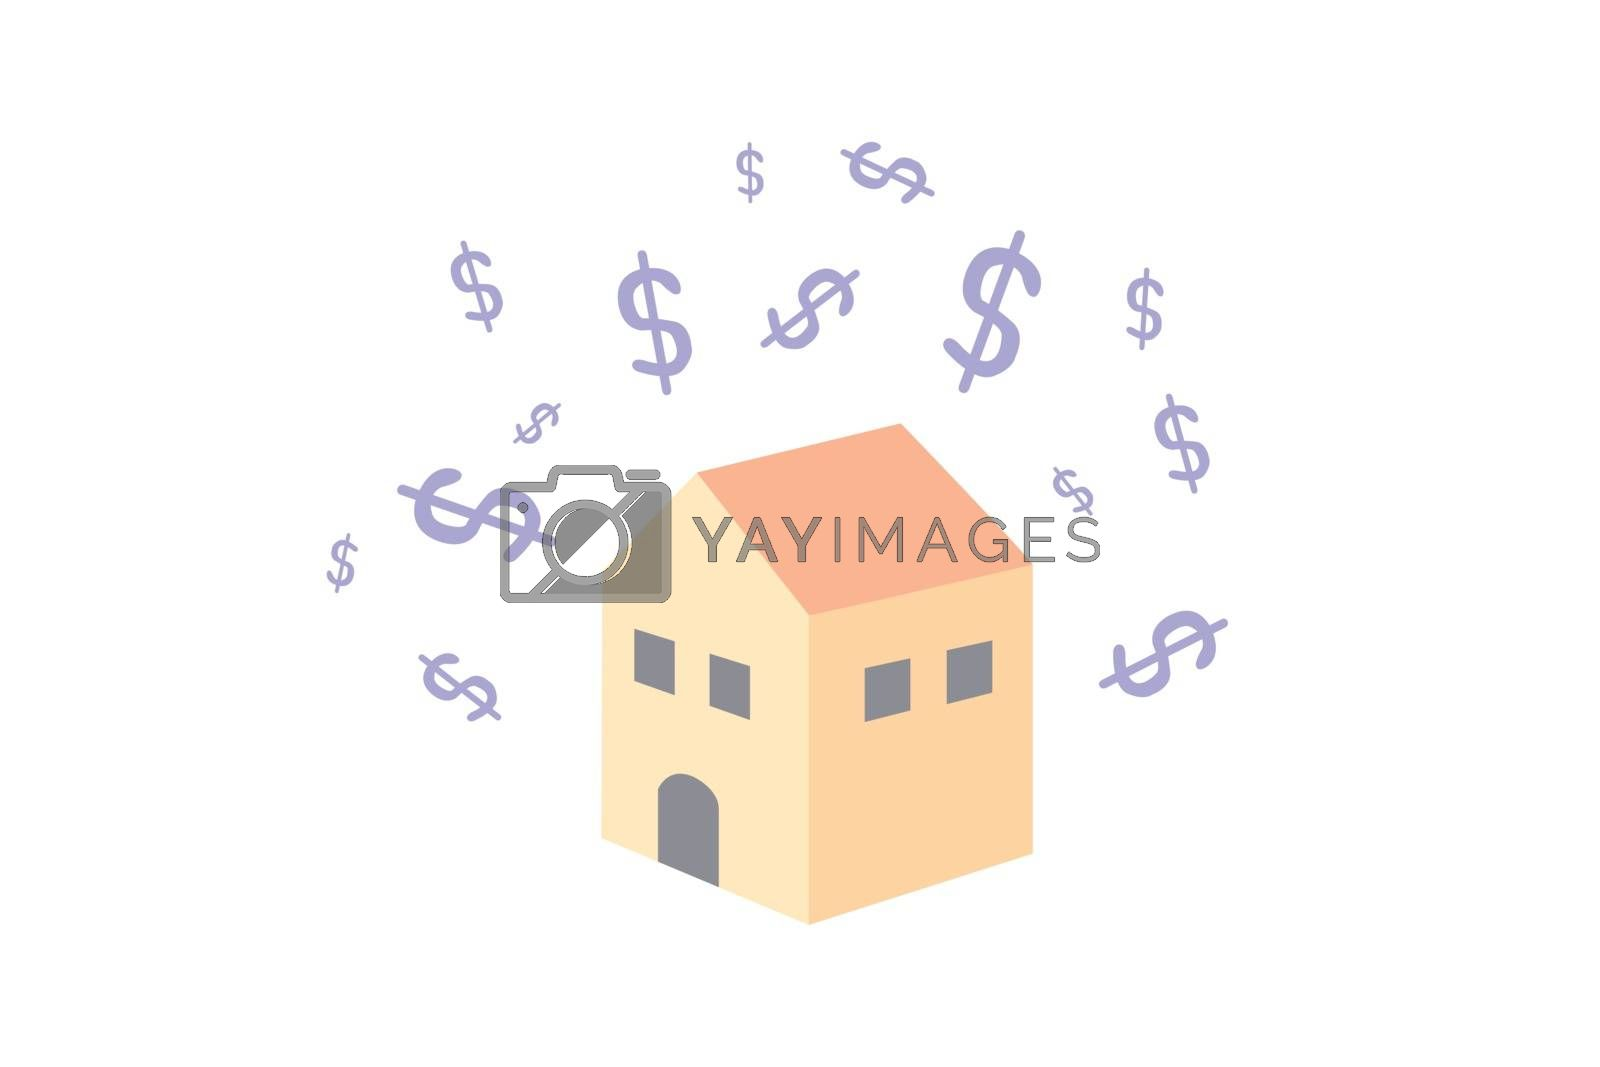 Dollars symbol floating above the house. Dollars symbol with house isolated on white background.